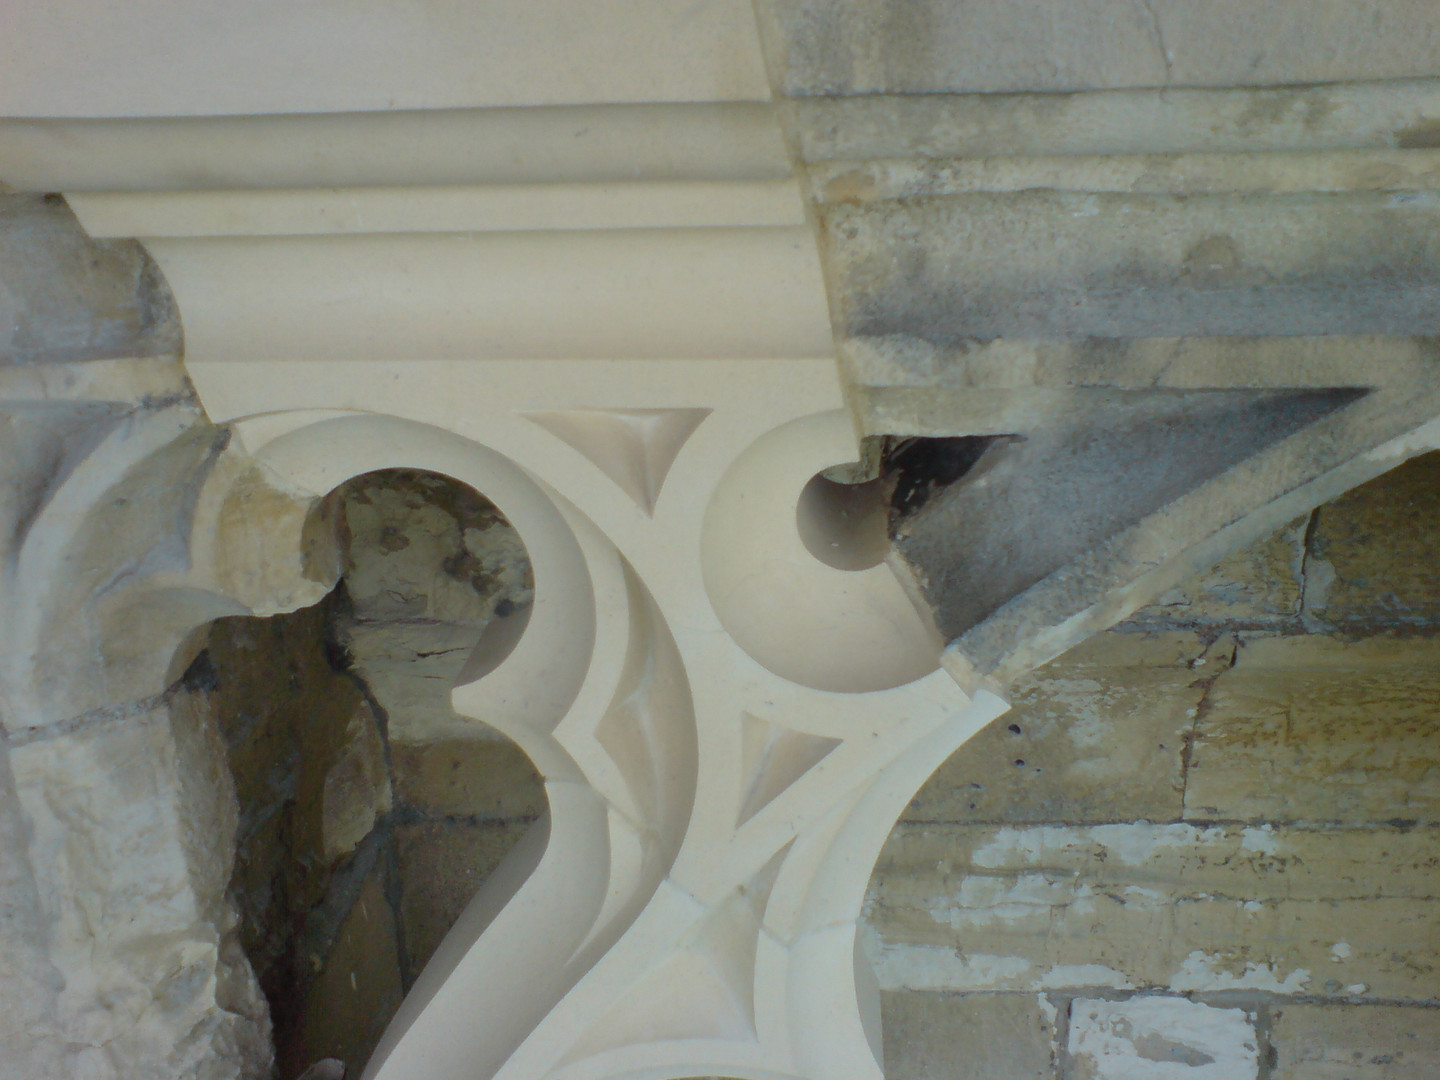 Restoration works being carried out on Huddleston Stone at the Minster